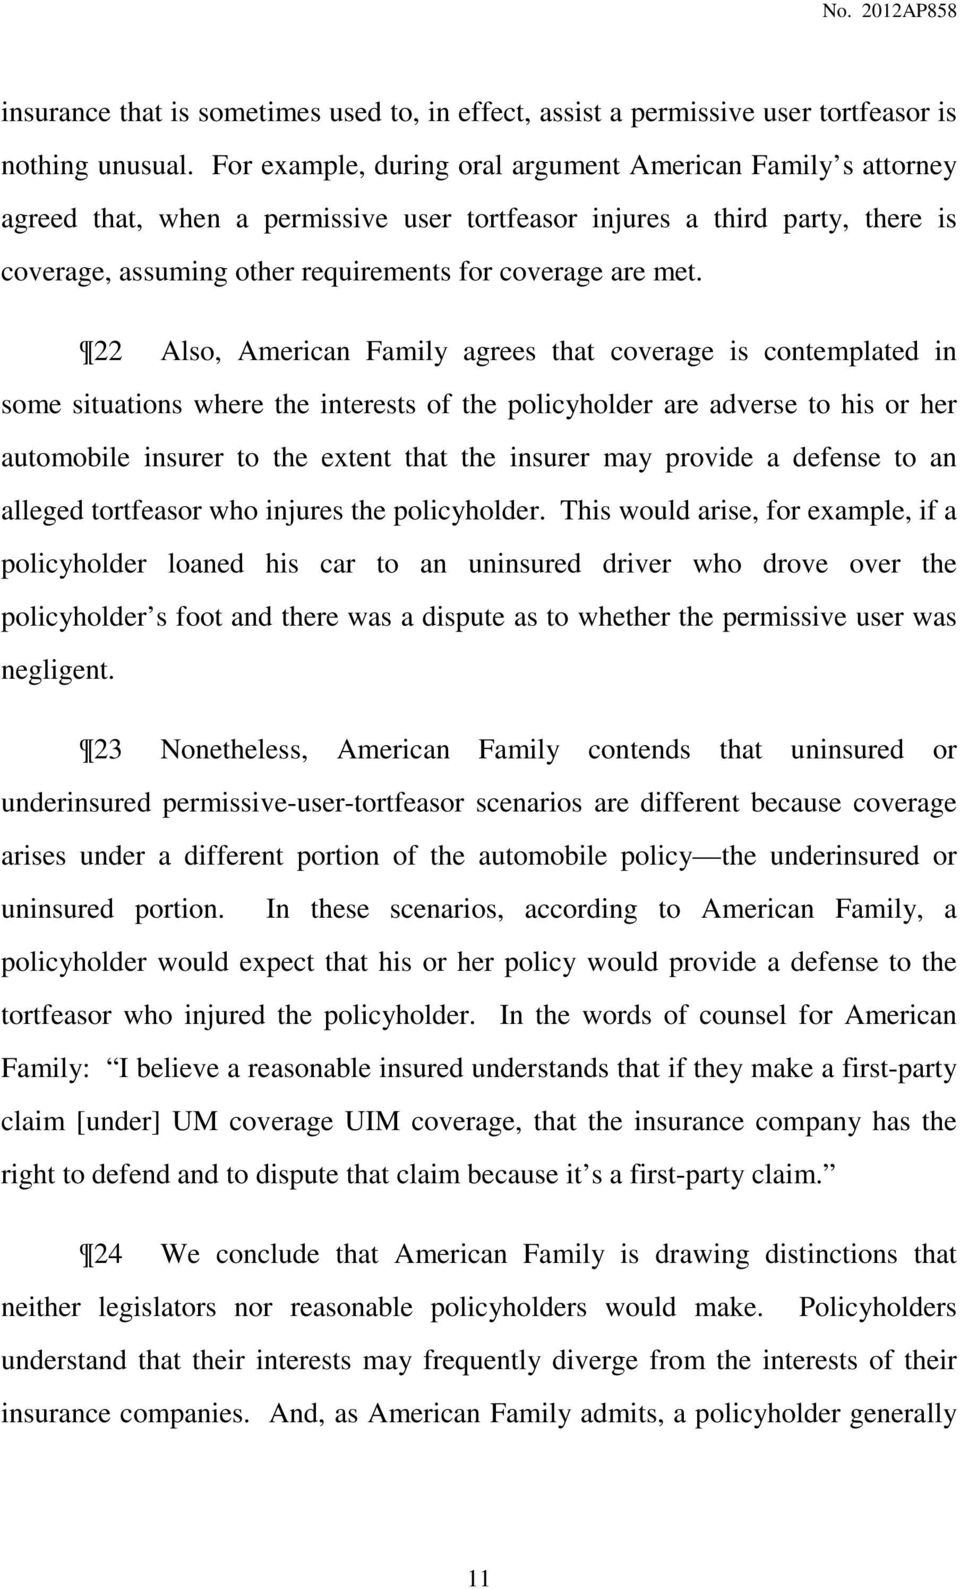 22 Also, American Family agrees that coverage is contemplated in some situations where the interests of the policyholder are adverse to his or her automobile insurer to the extent that the insurer